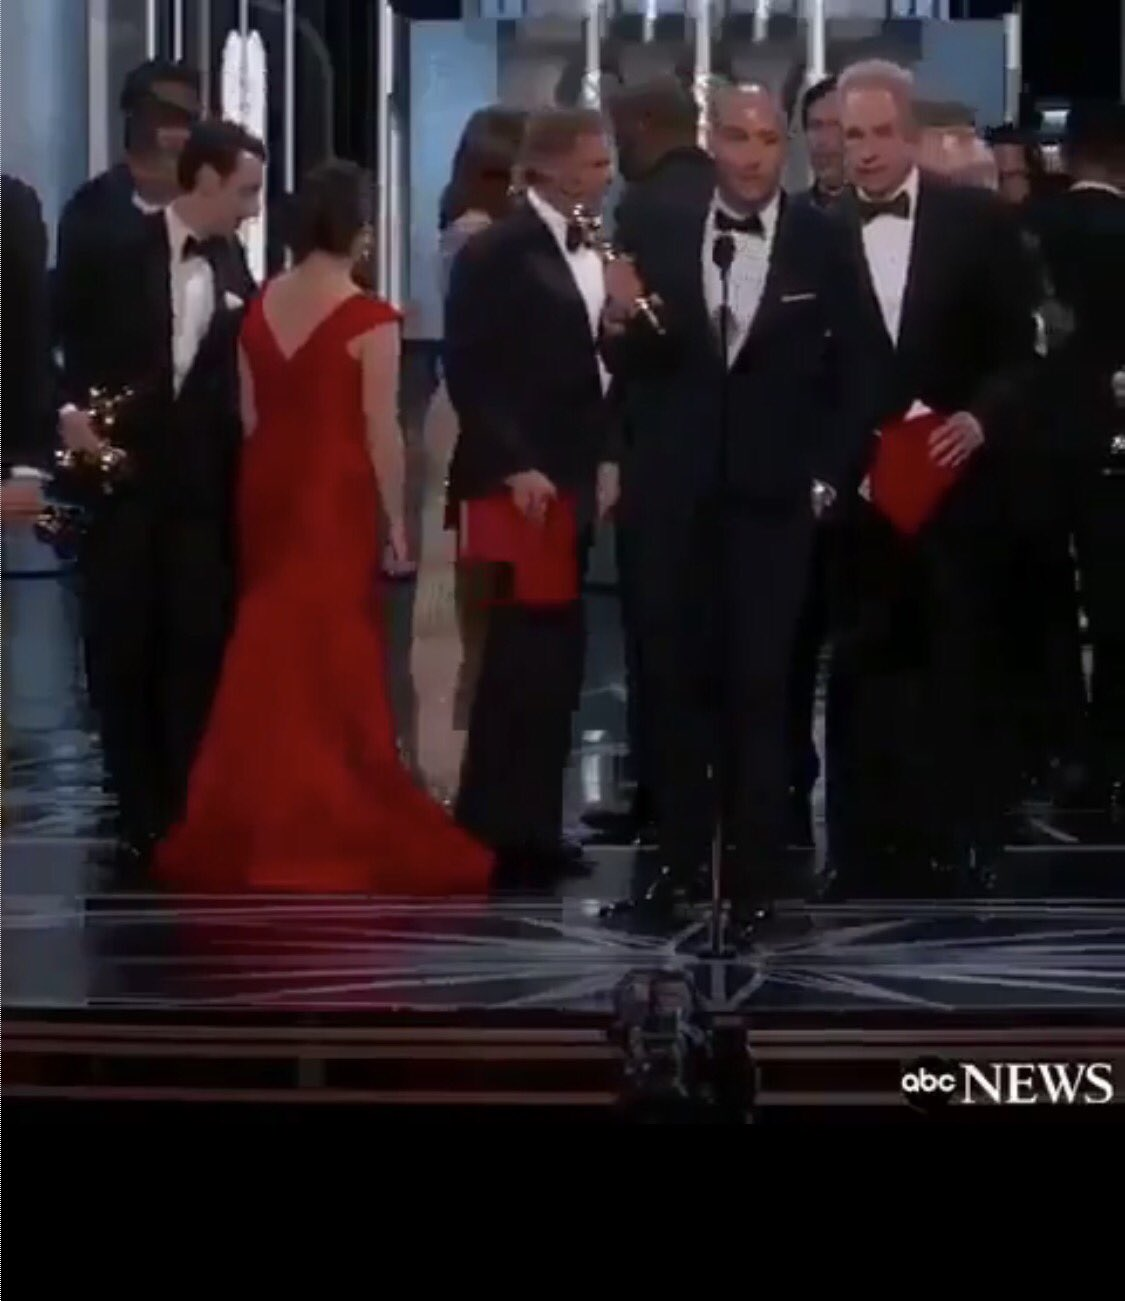 Britcaligirl‏@Britcaligirl  3h3 hours ago More  Why are there THREE? envelopes on the stage? #Oscars #MOONLIGHT #lalaland #academyawards #WarrenBeatty @accesshollywood @TMZ @enews @KTLA pic.twitter.com/s7DLdtPh1D 2 replies 0 retweets 0 likes Reply  2   Retweet     Like